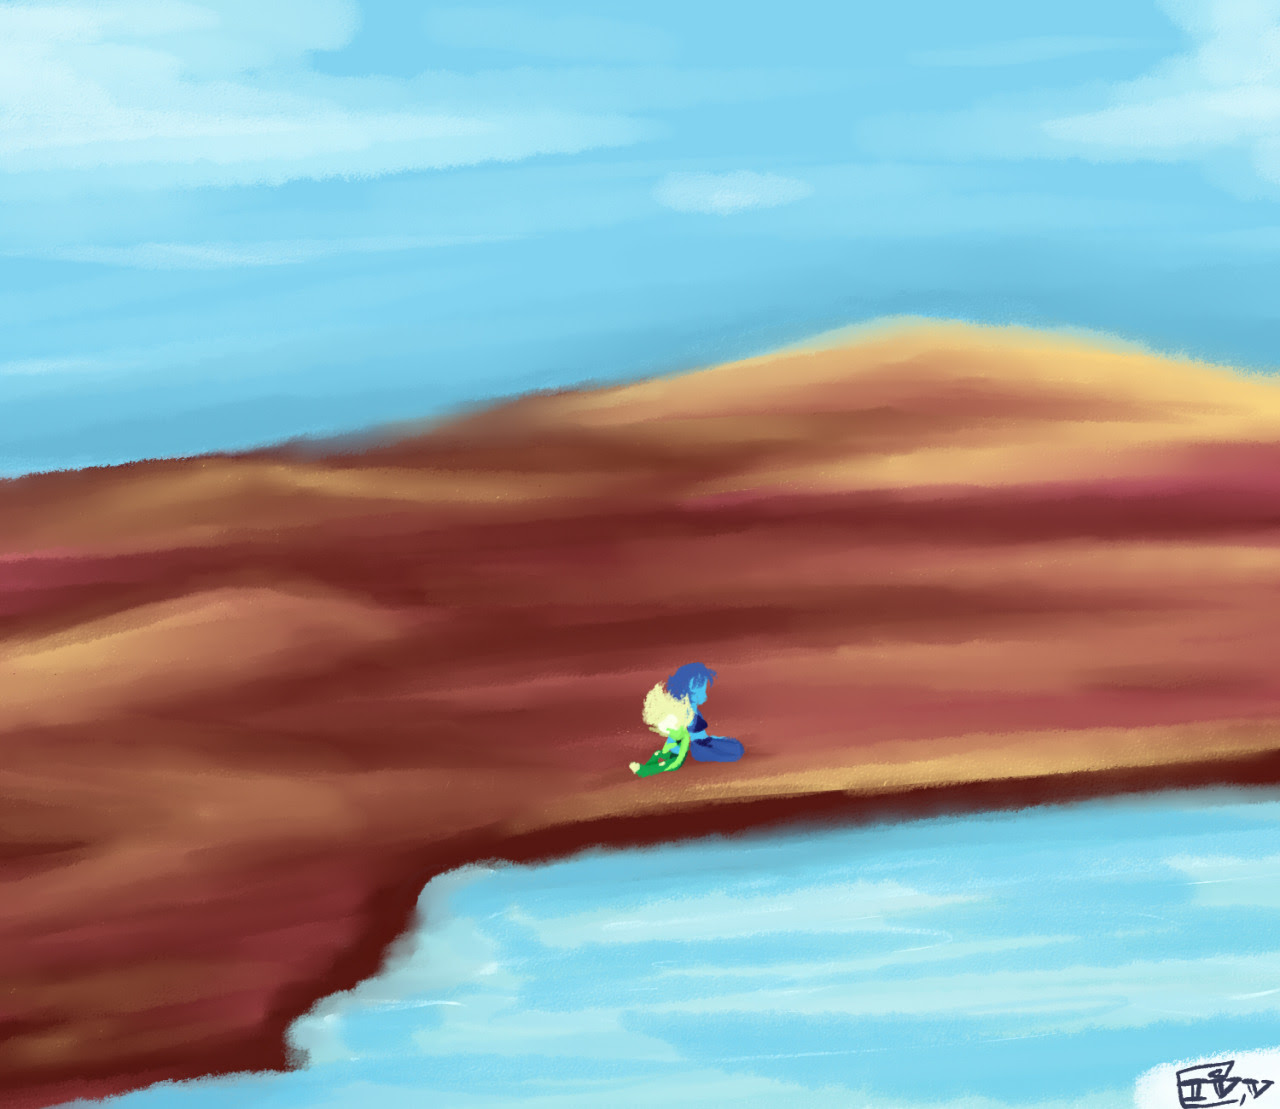 i was practicing australian landscapes and lakes, in like… the heidelberg school style? so i made it fun with some lapidot